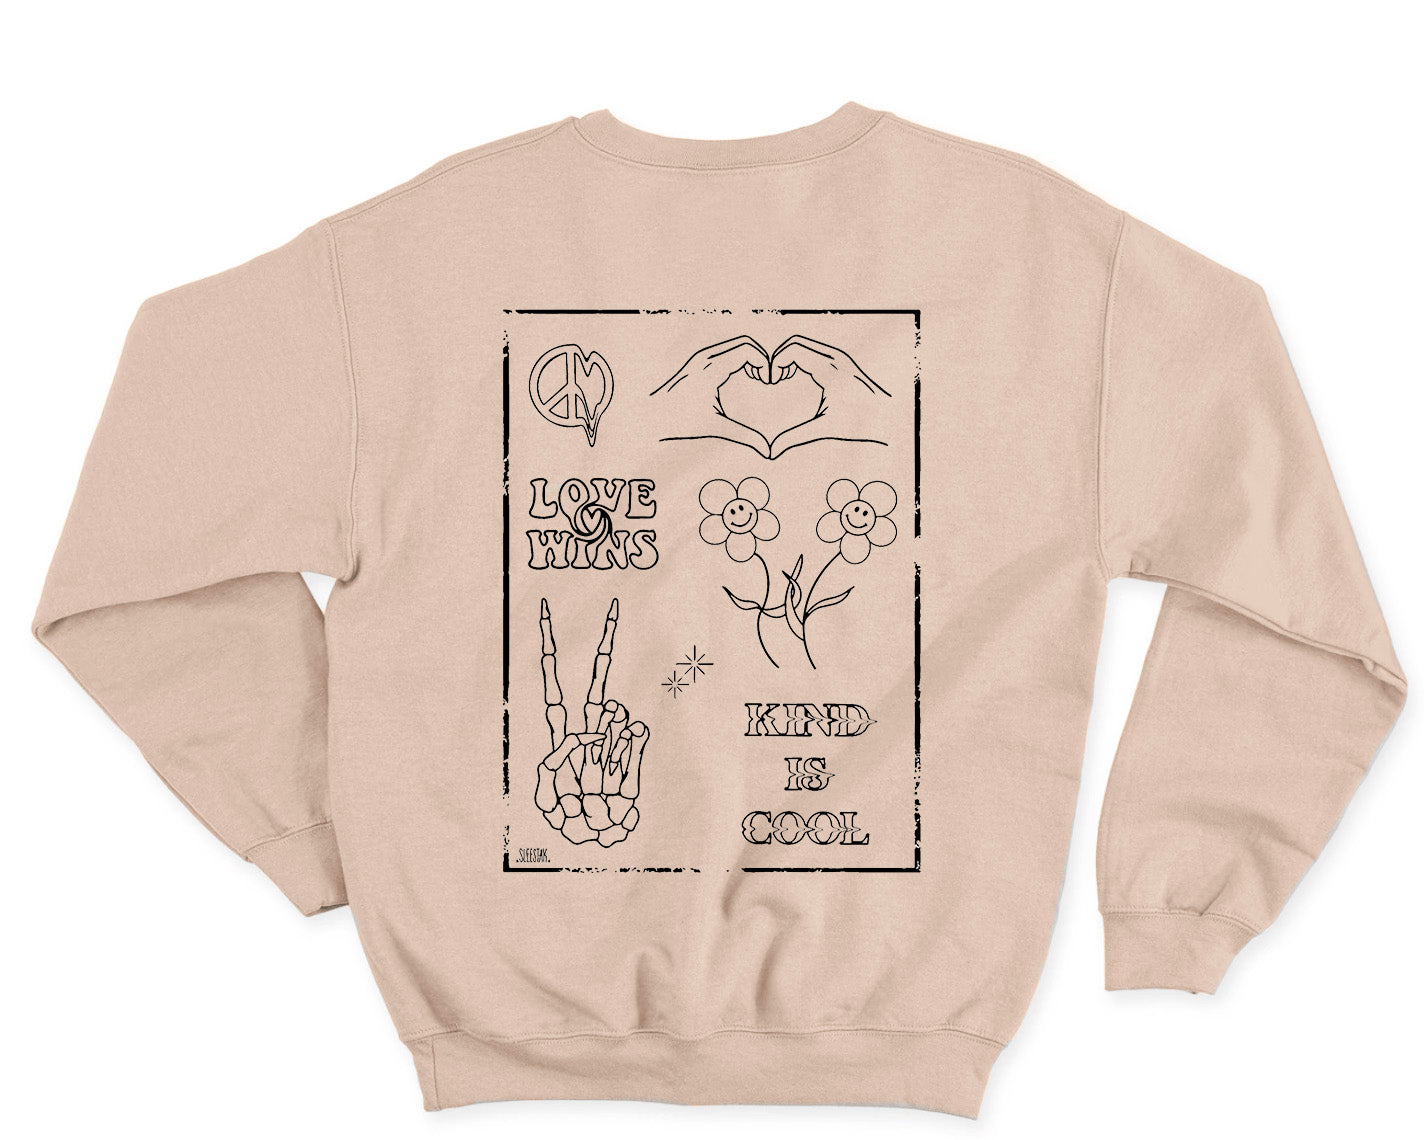 Love Wins - Beige Crewneck